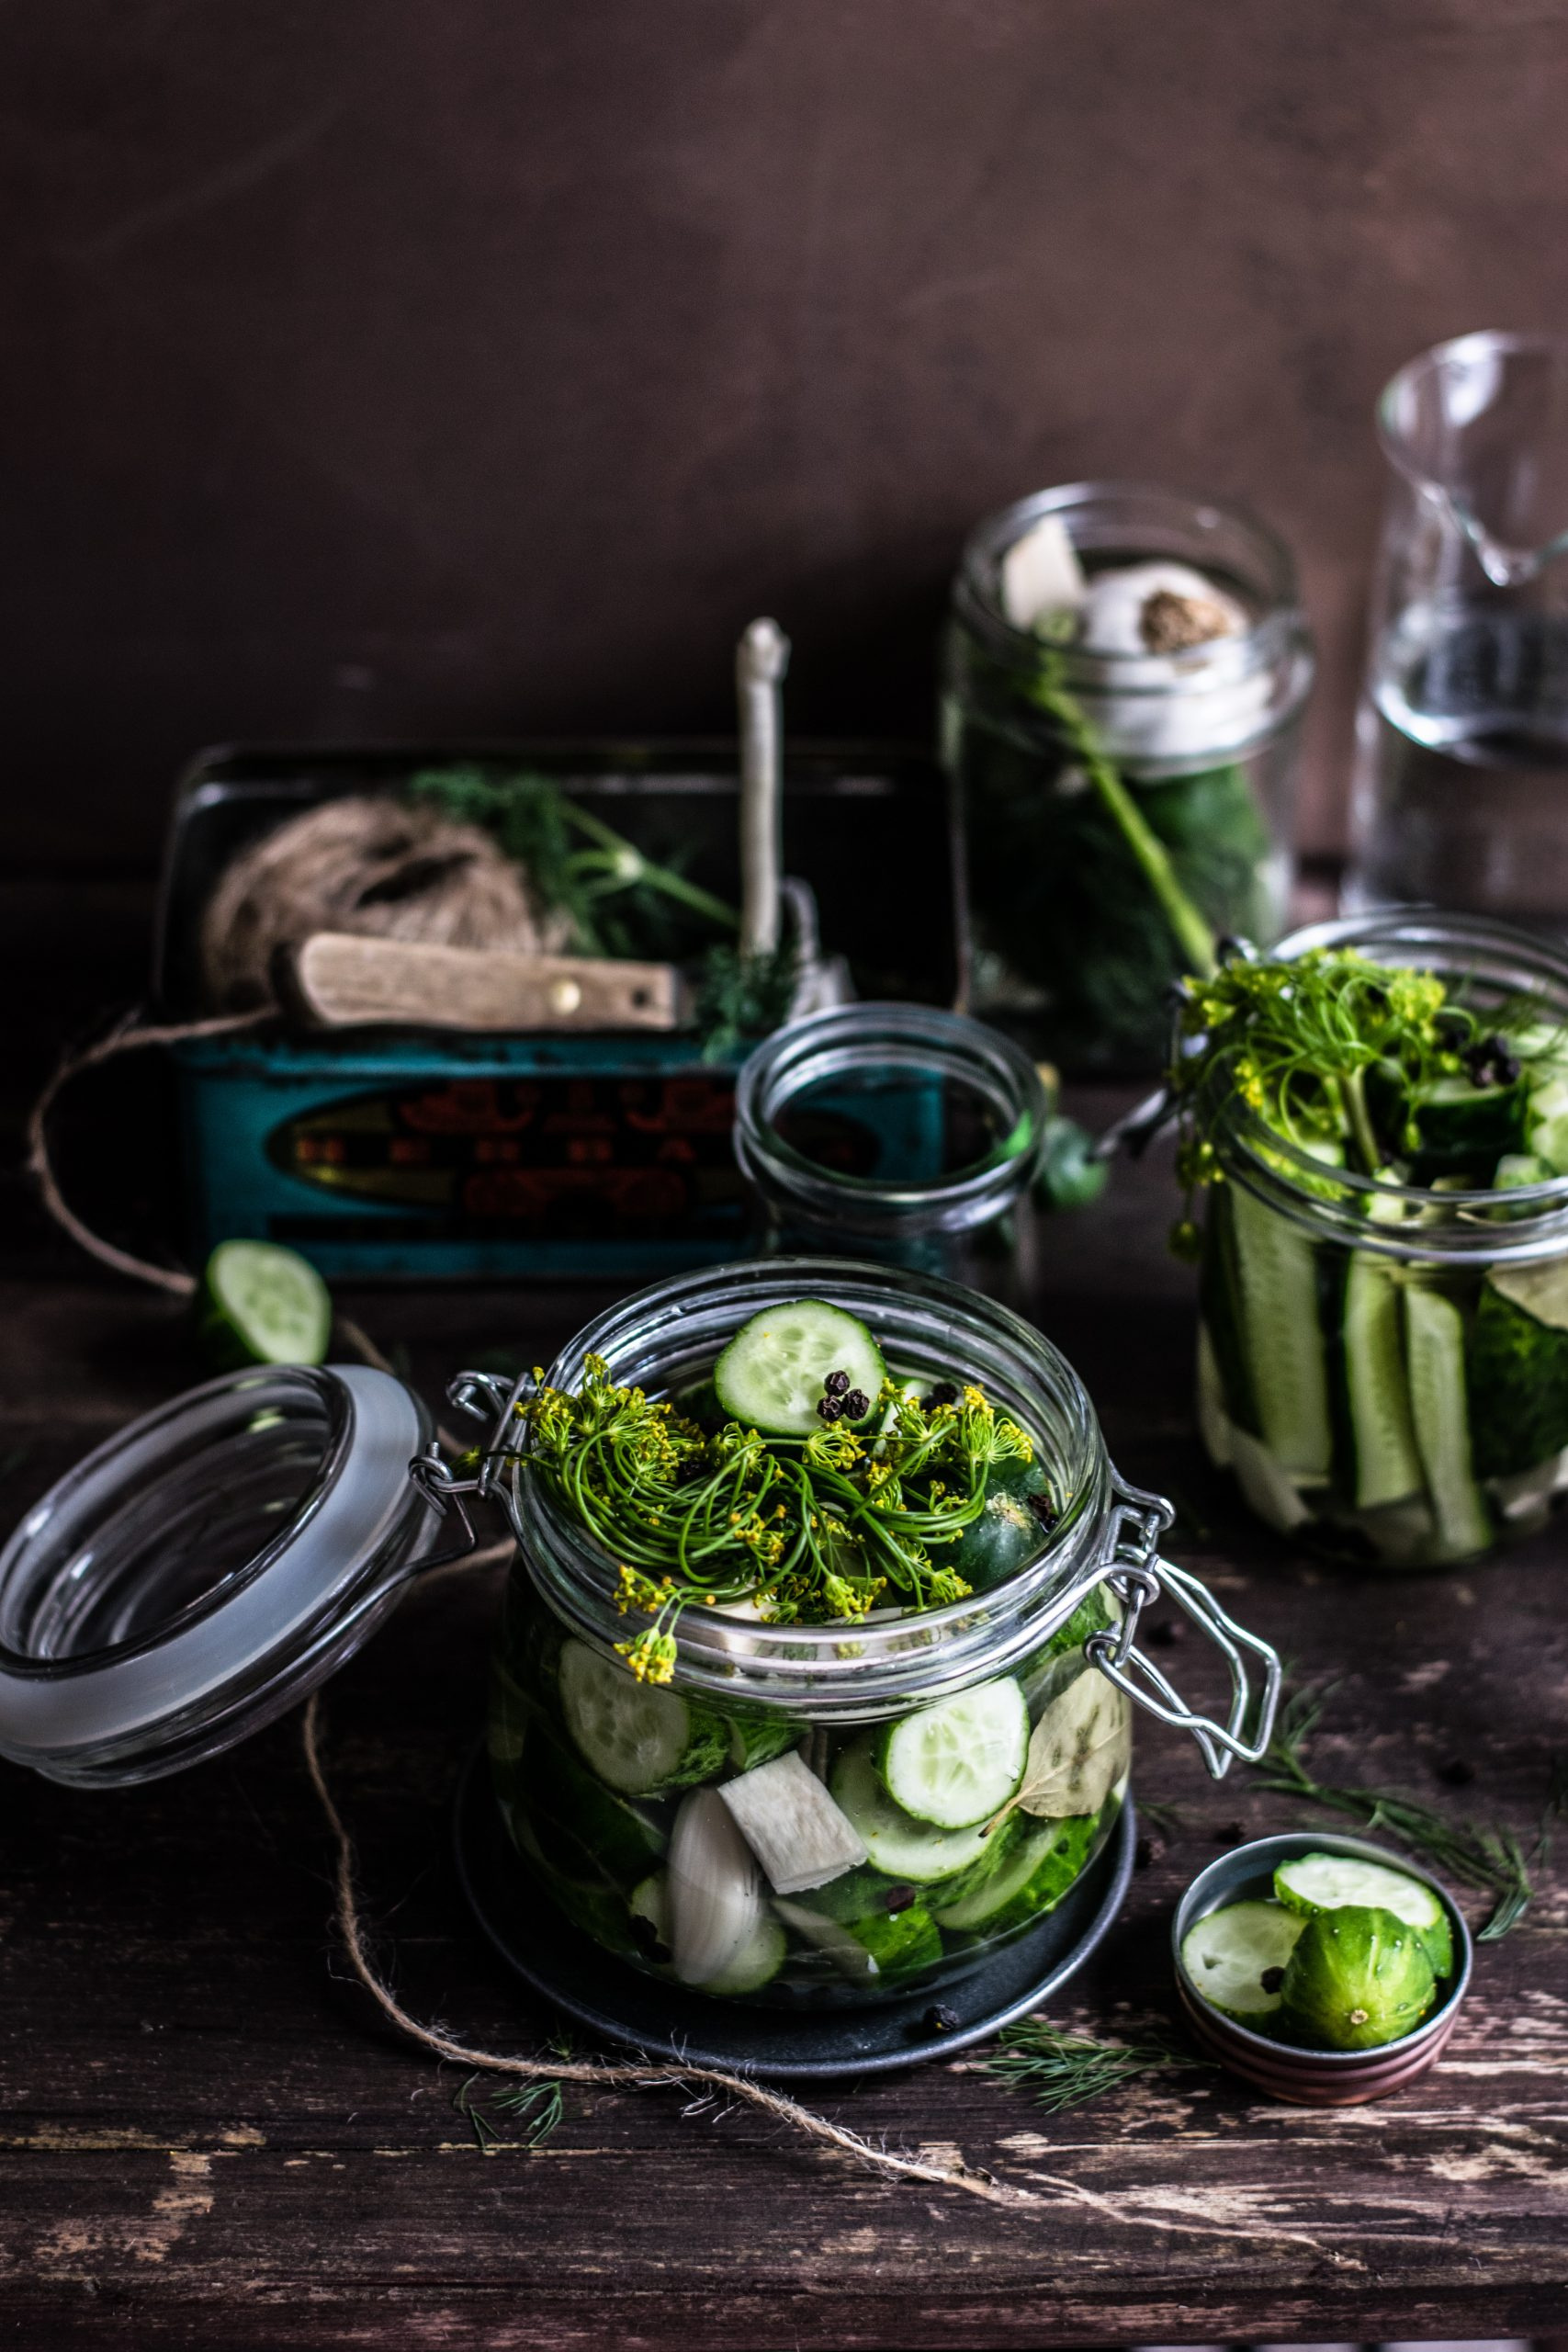 Homemade pickles and dill in glass jar